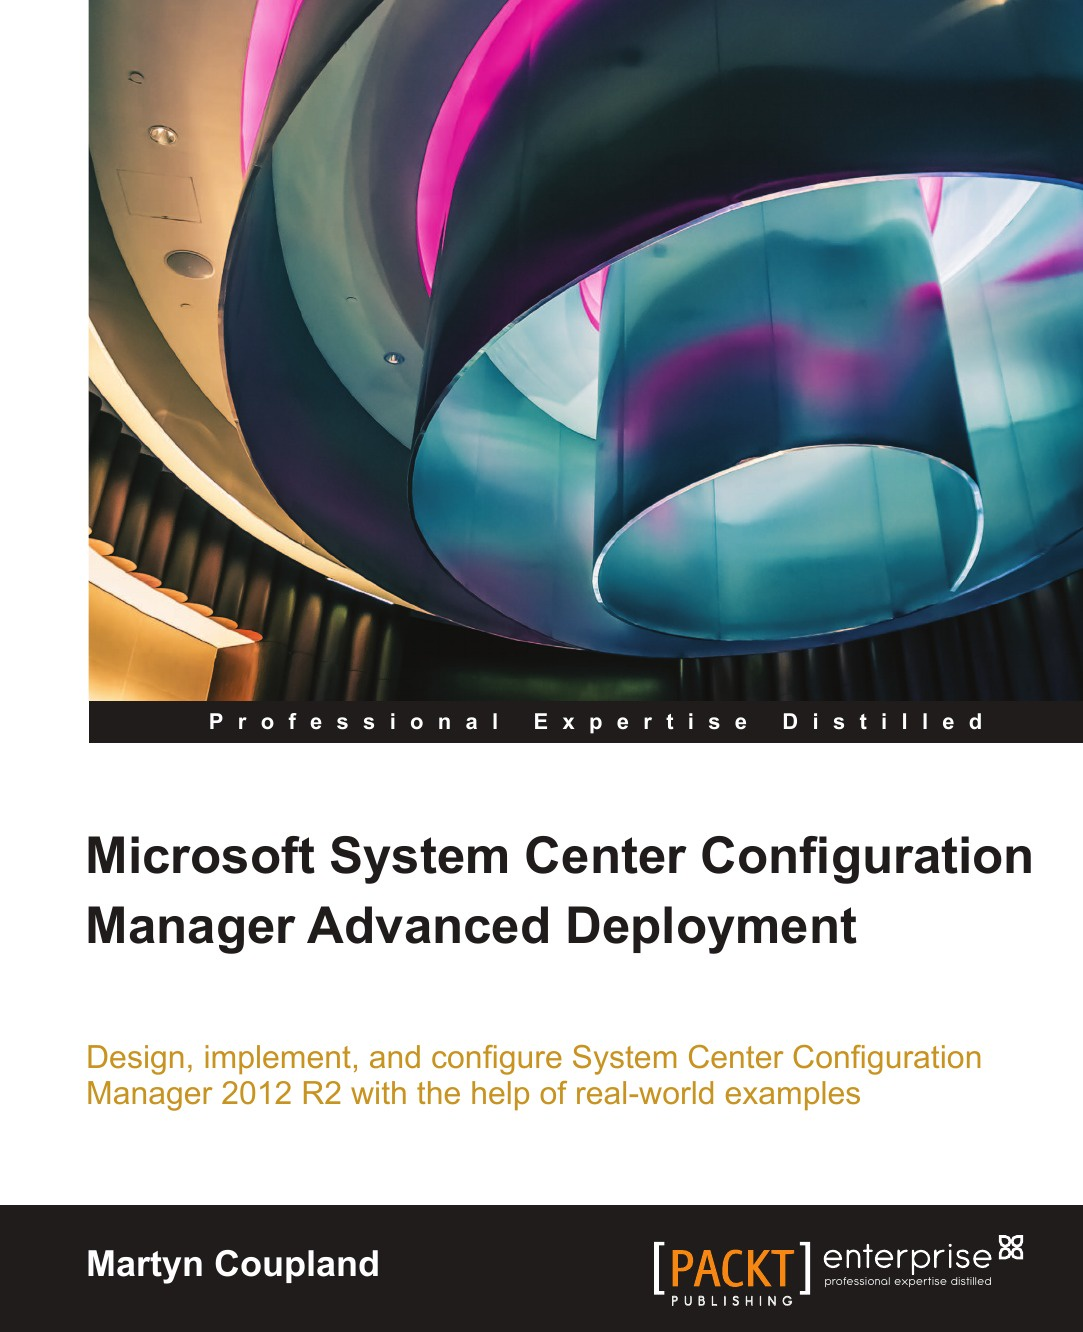 Martyn Coupland Microsoft System Center Configuration Manager Advanced Deployment manager